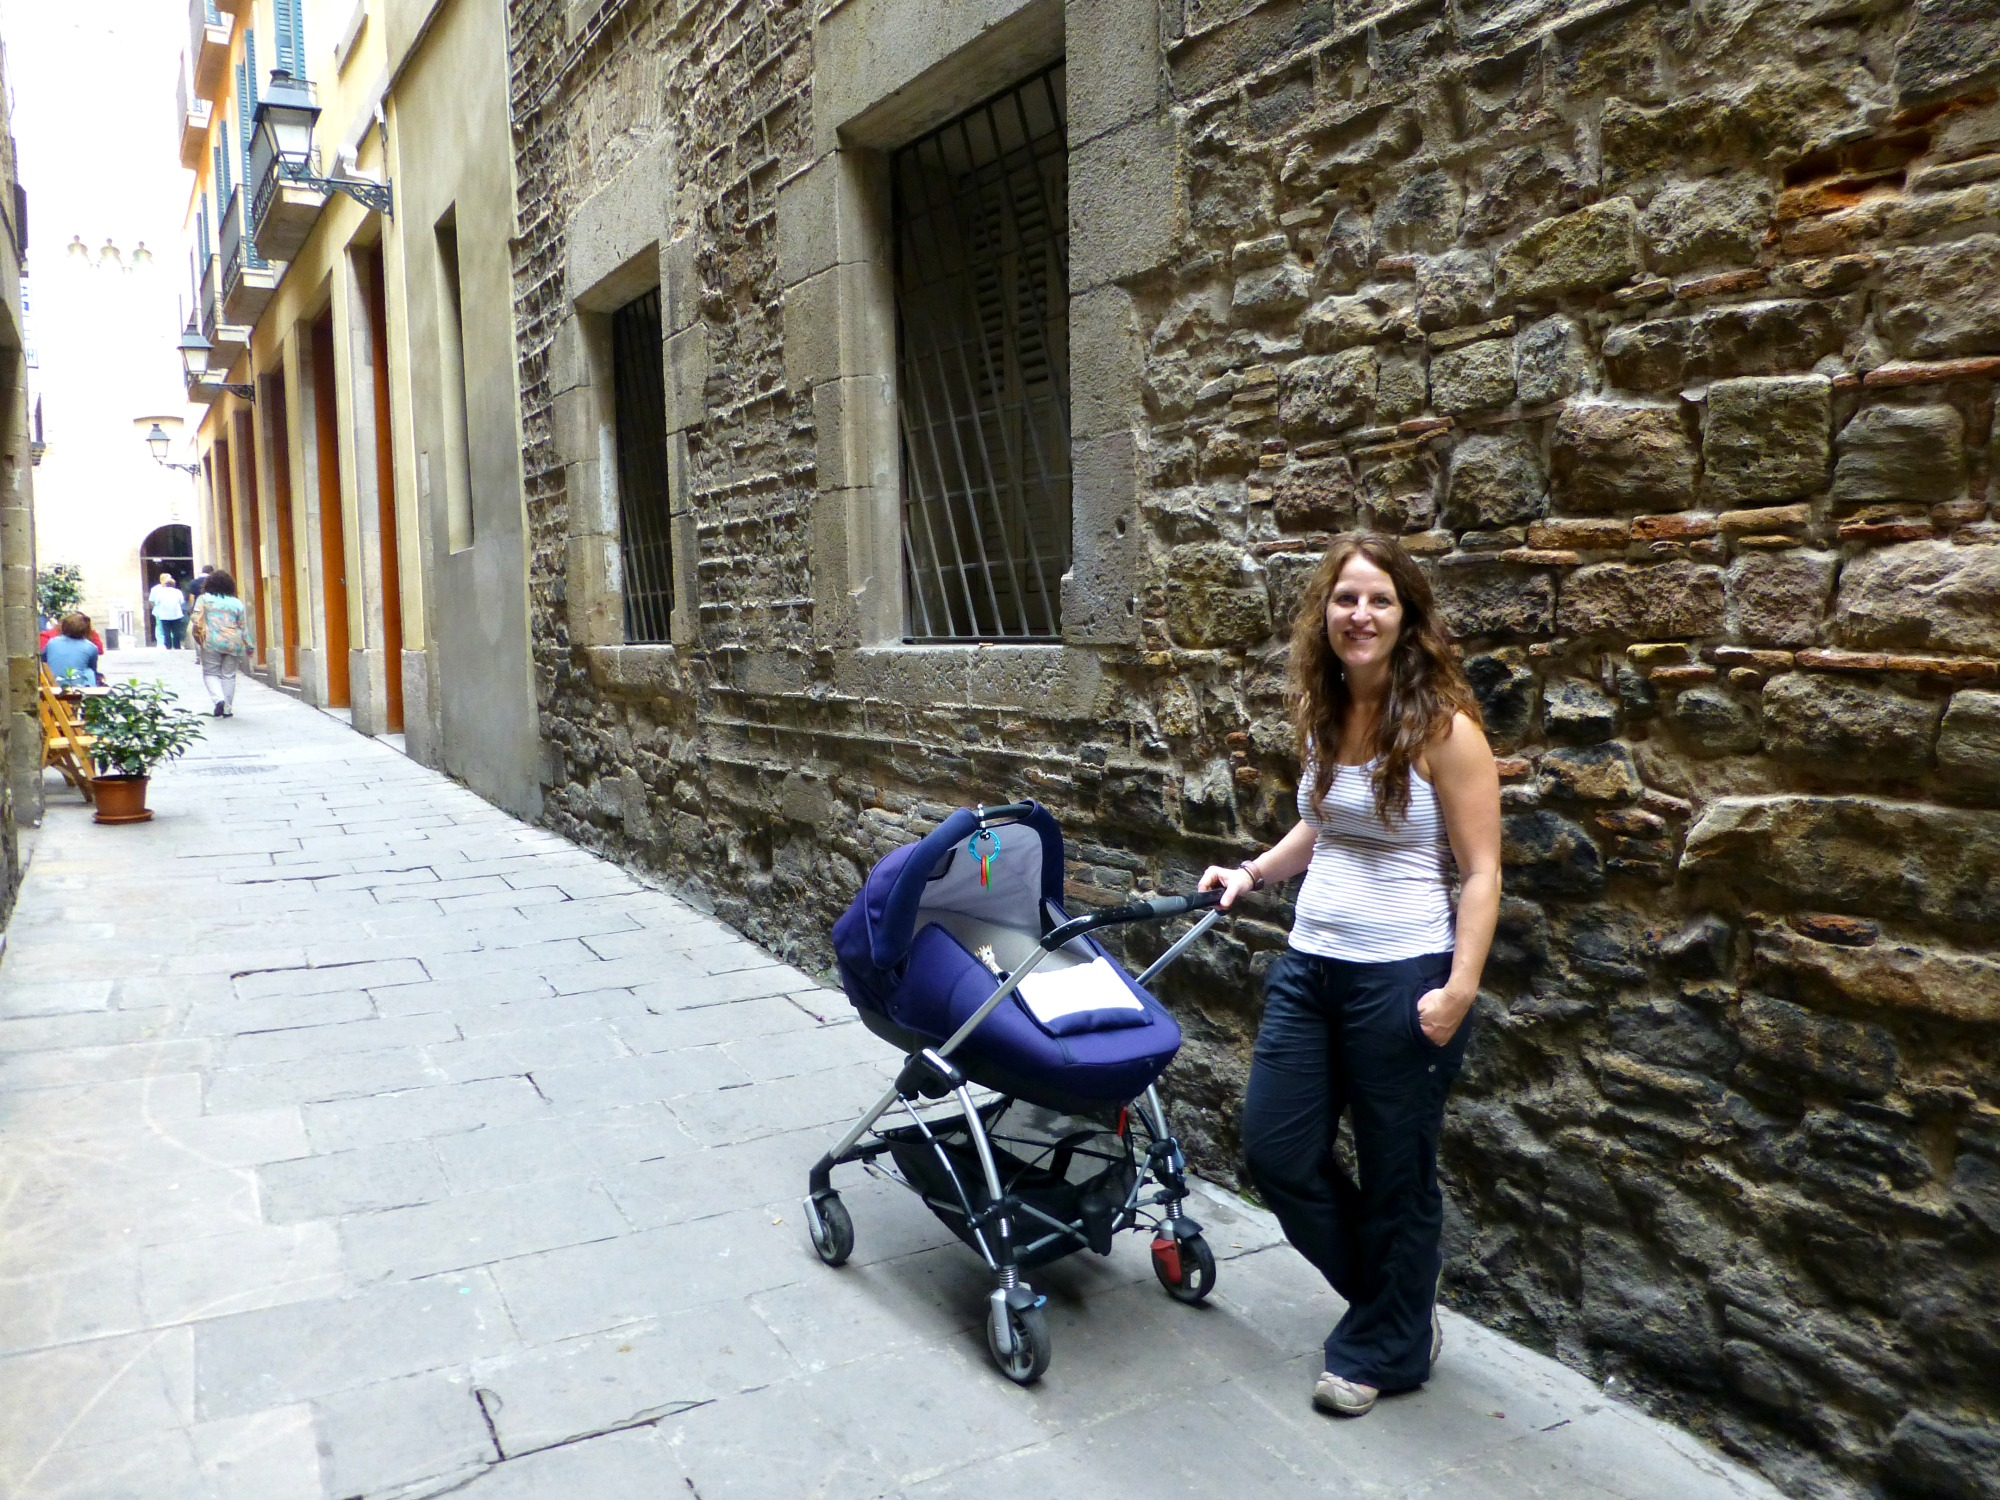 Using a stroller in Barcelona